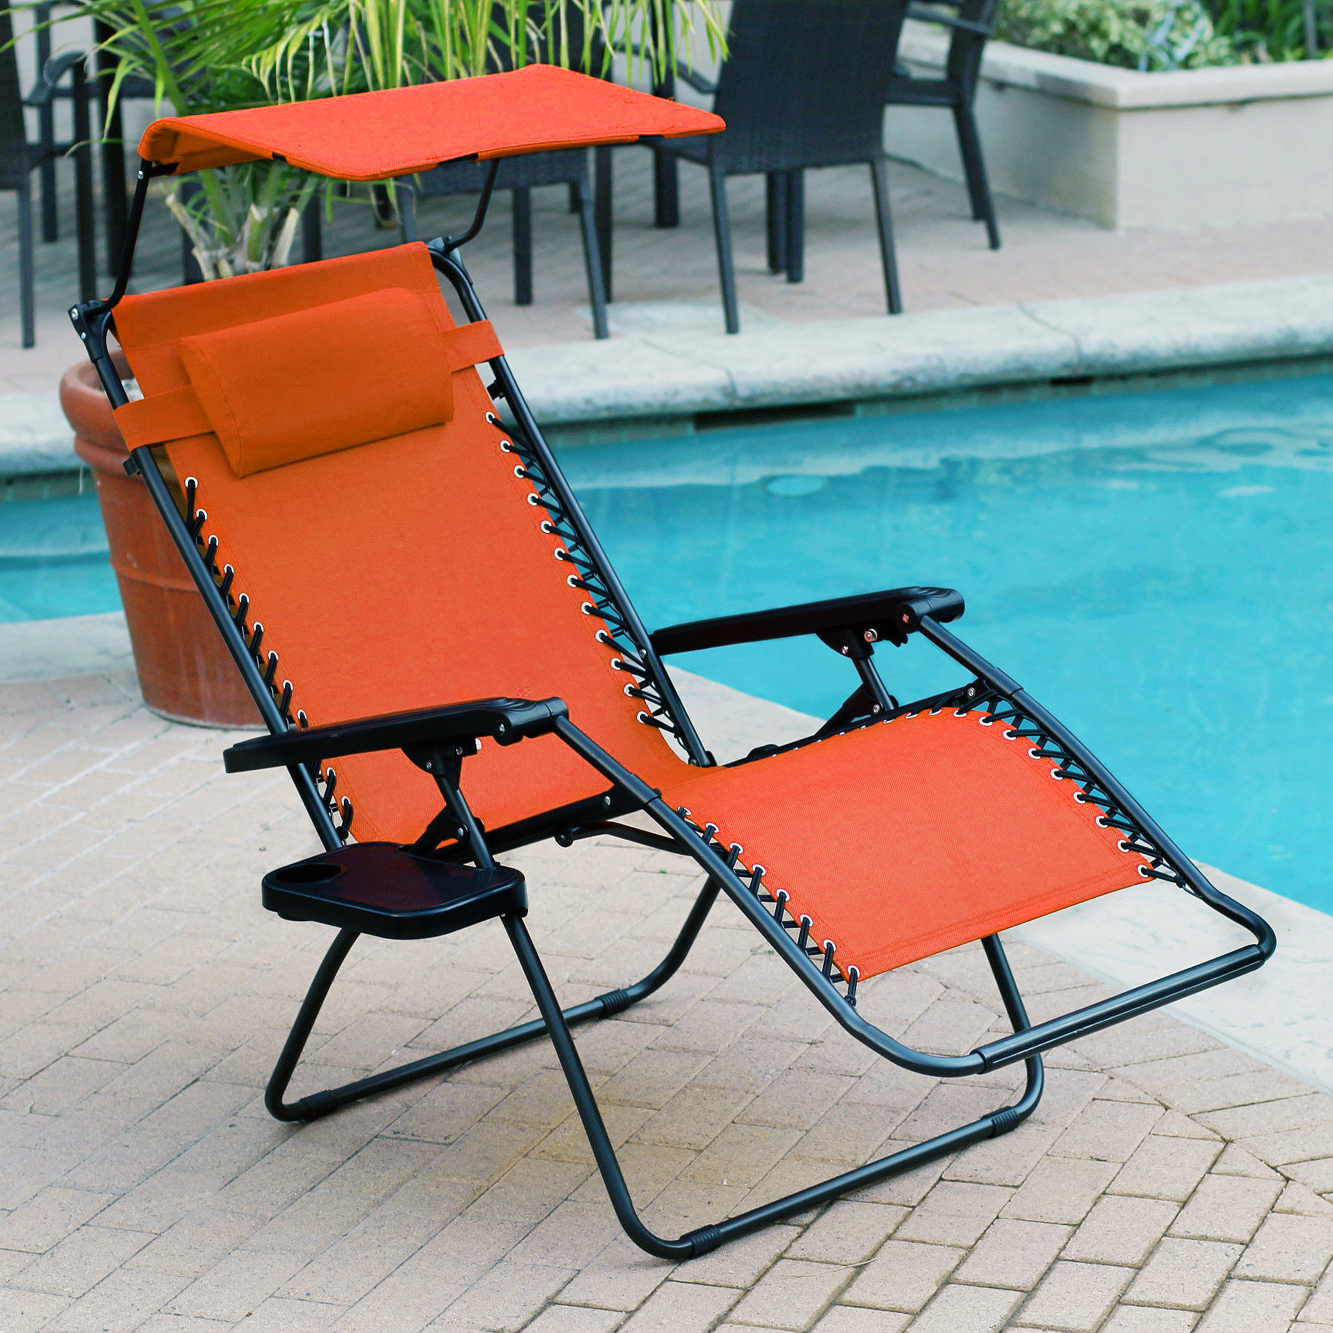 Best And Newest The 4 Best Zero Gravity Chairs On The Market Reviews & Guide With Regard To Outdoor Yard Pool Recliner Folding Lounge Table Chairs (View 1 of 25)